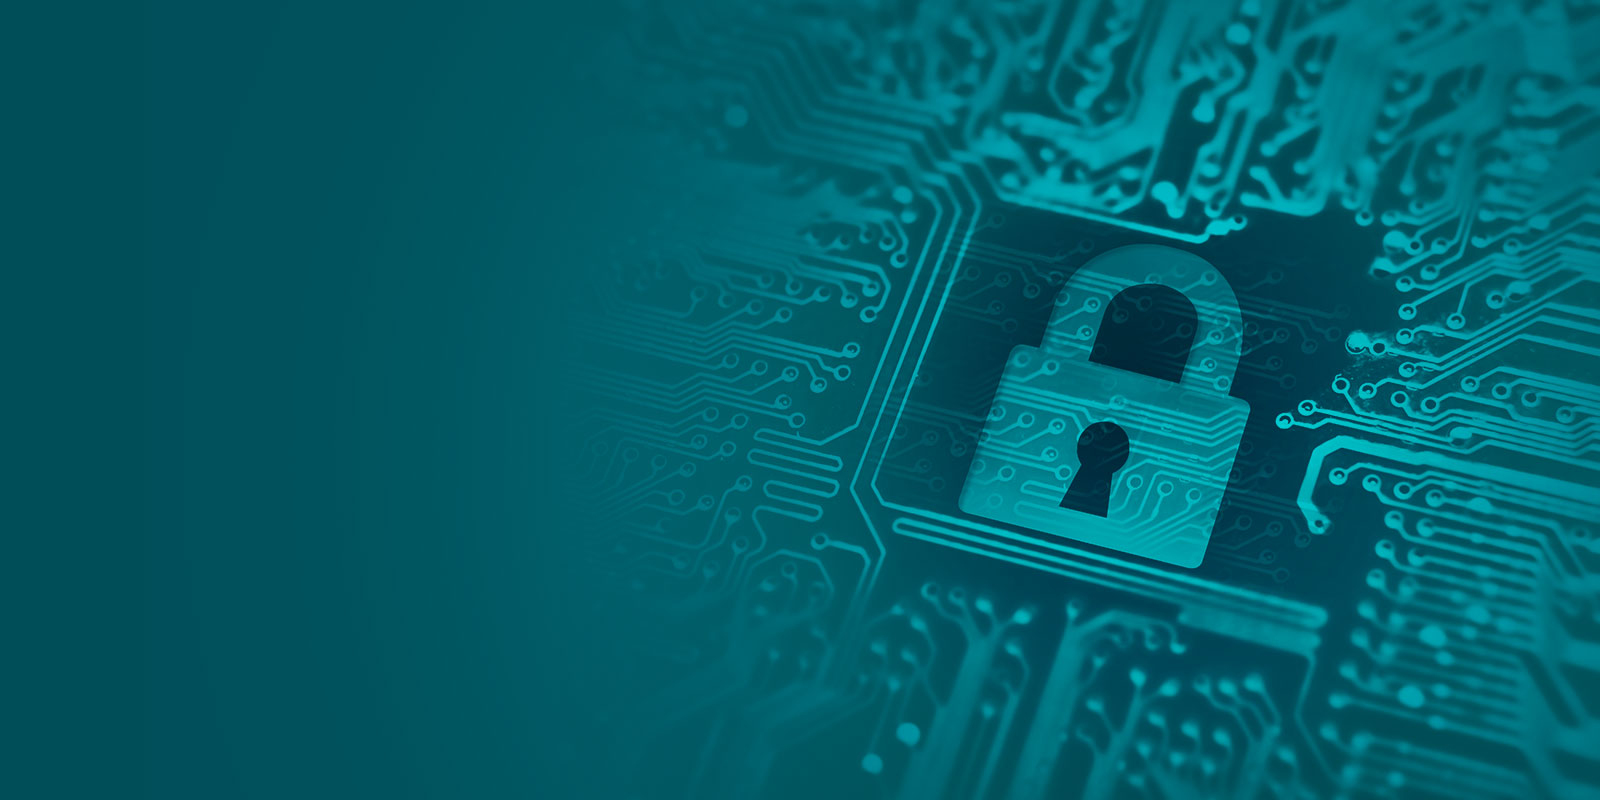 Protect yourself against the latest cyberthreats and attacks